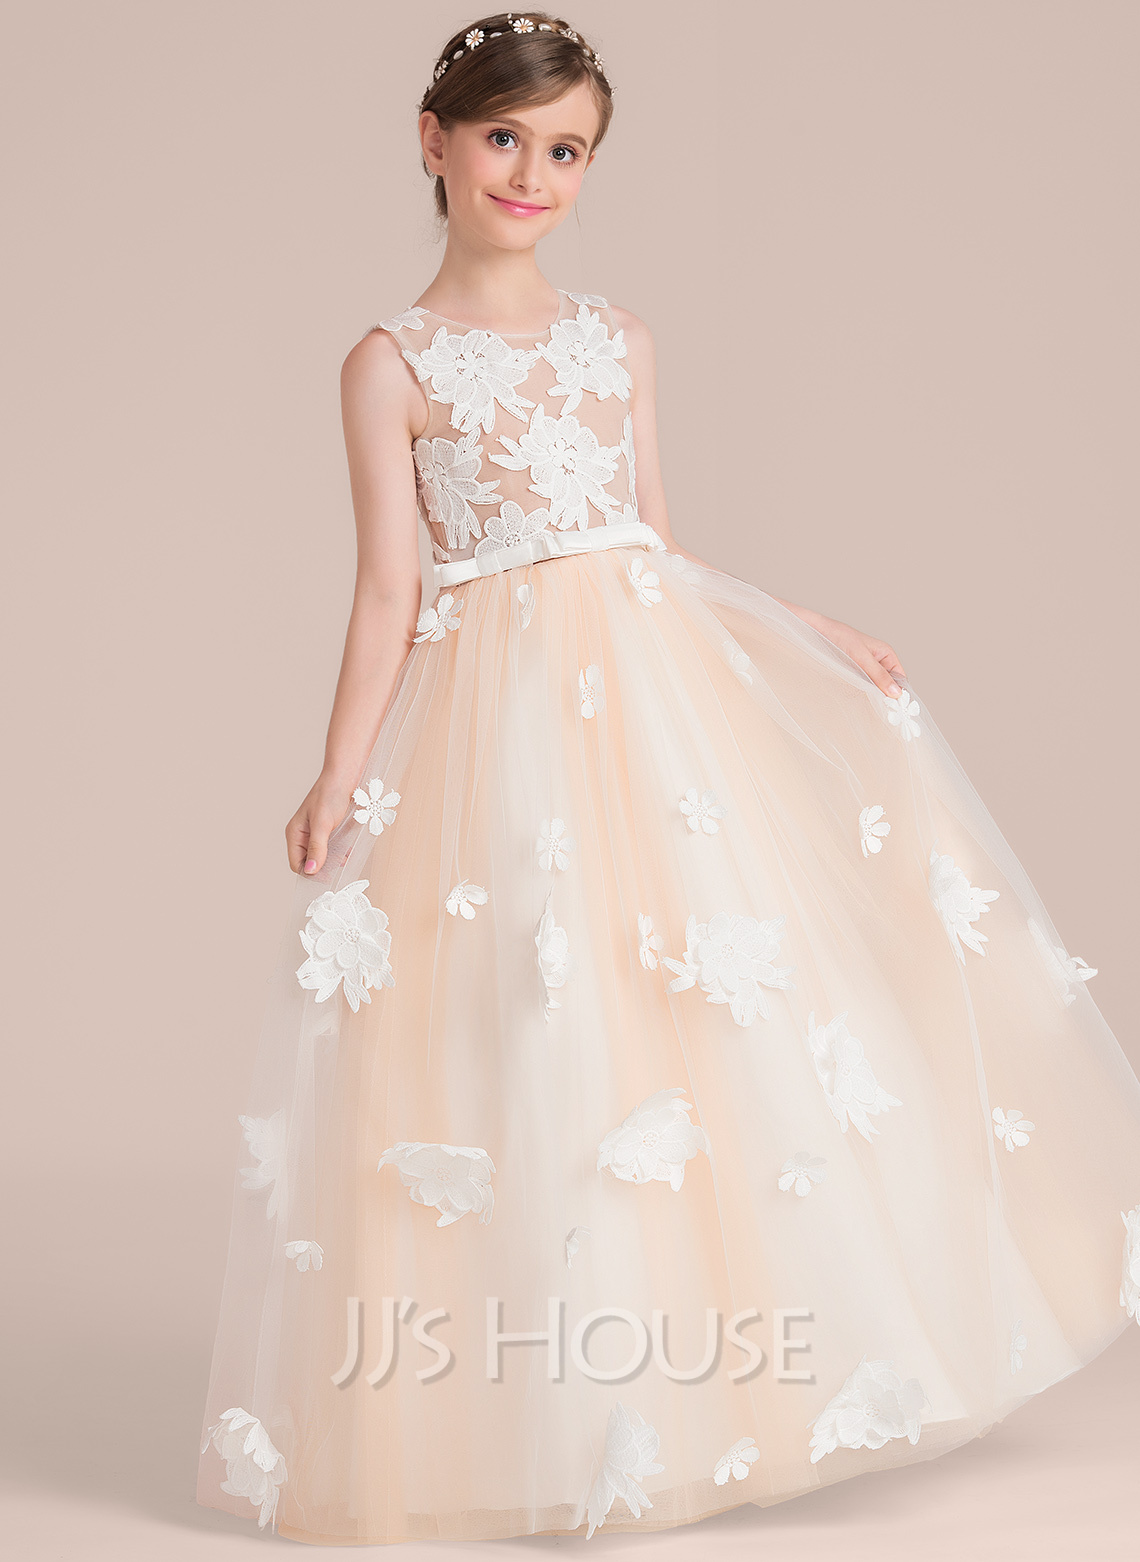 Ball-Gown/Princess Scoop Neck Floor-Length Tulle Junior Bridesmaid Dress With Flower(s) Bow(s)